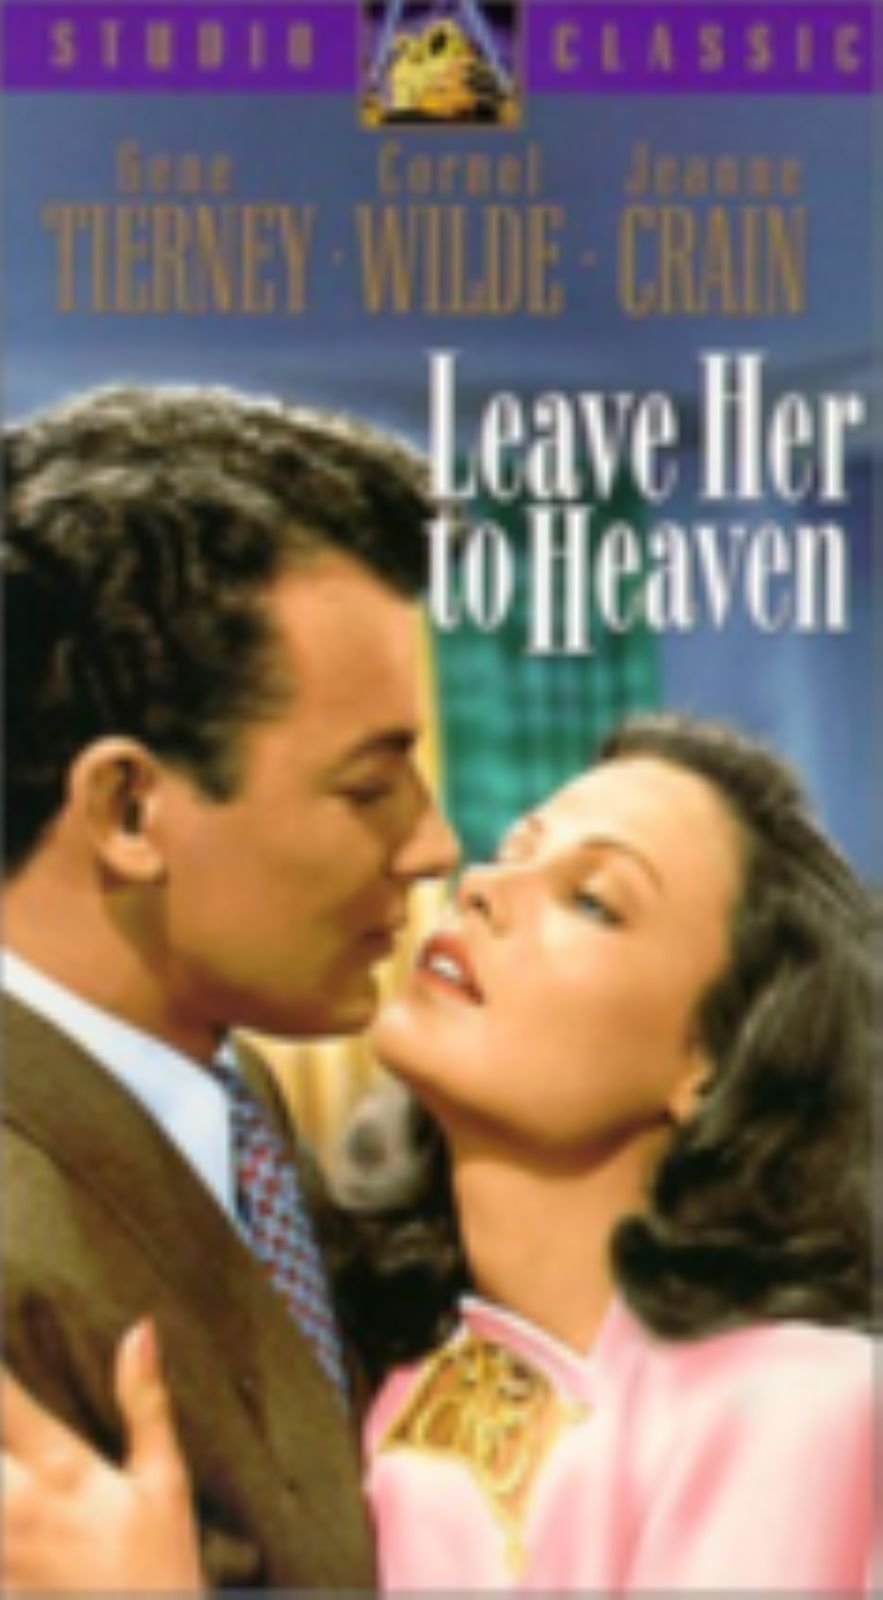 Leave Her to Heaven Vhs